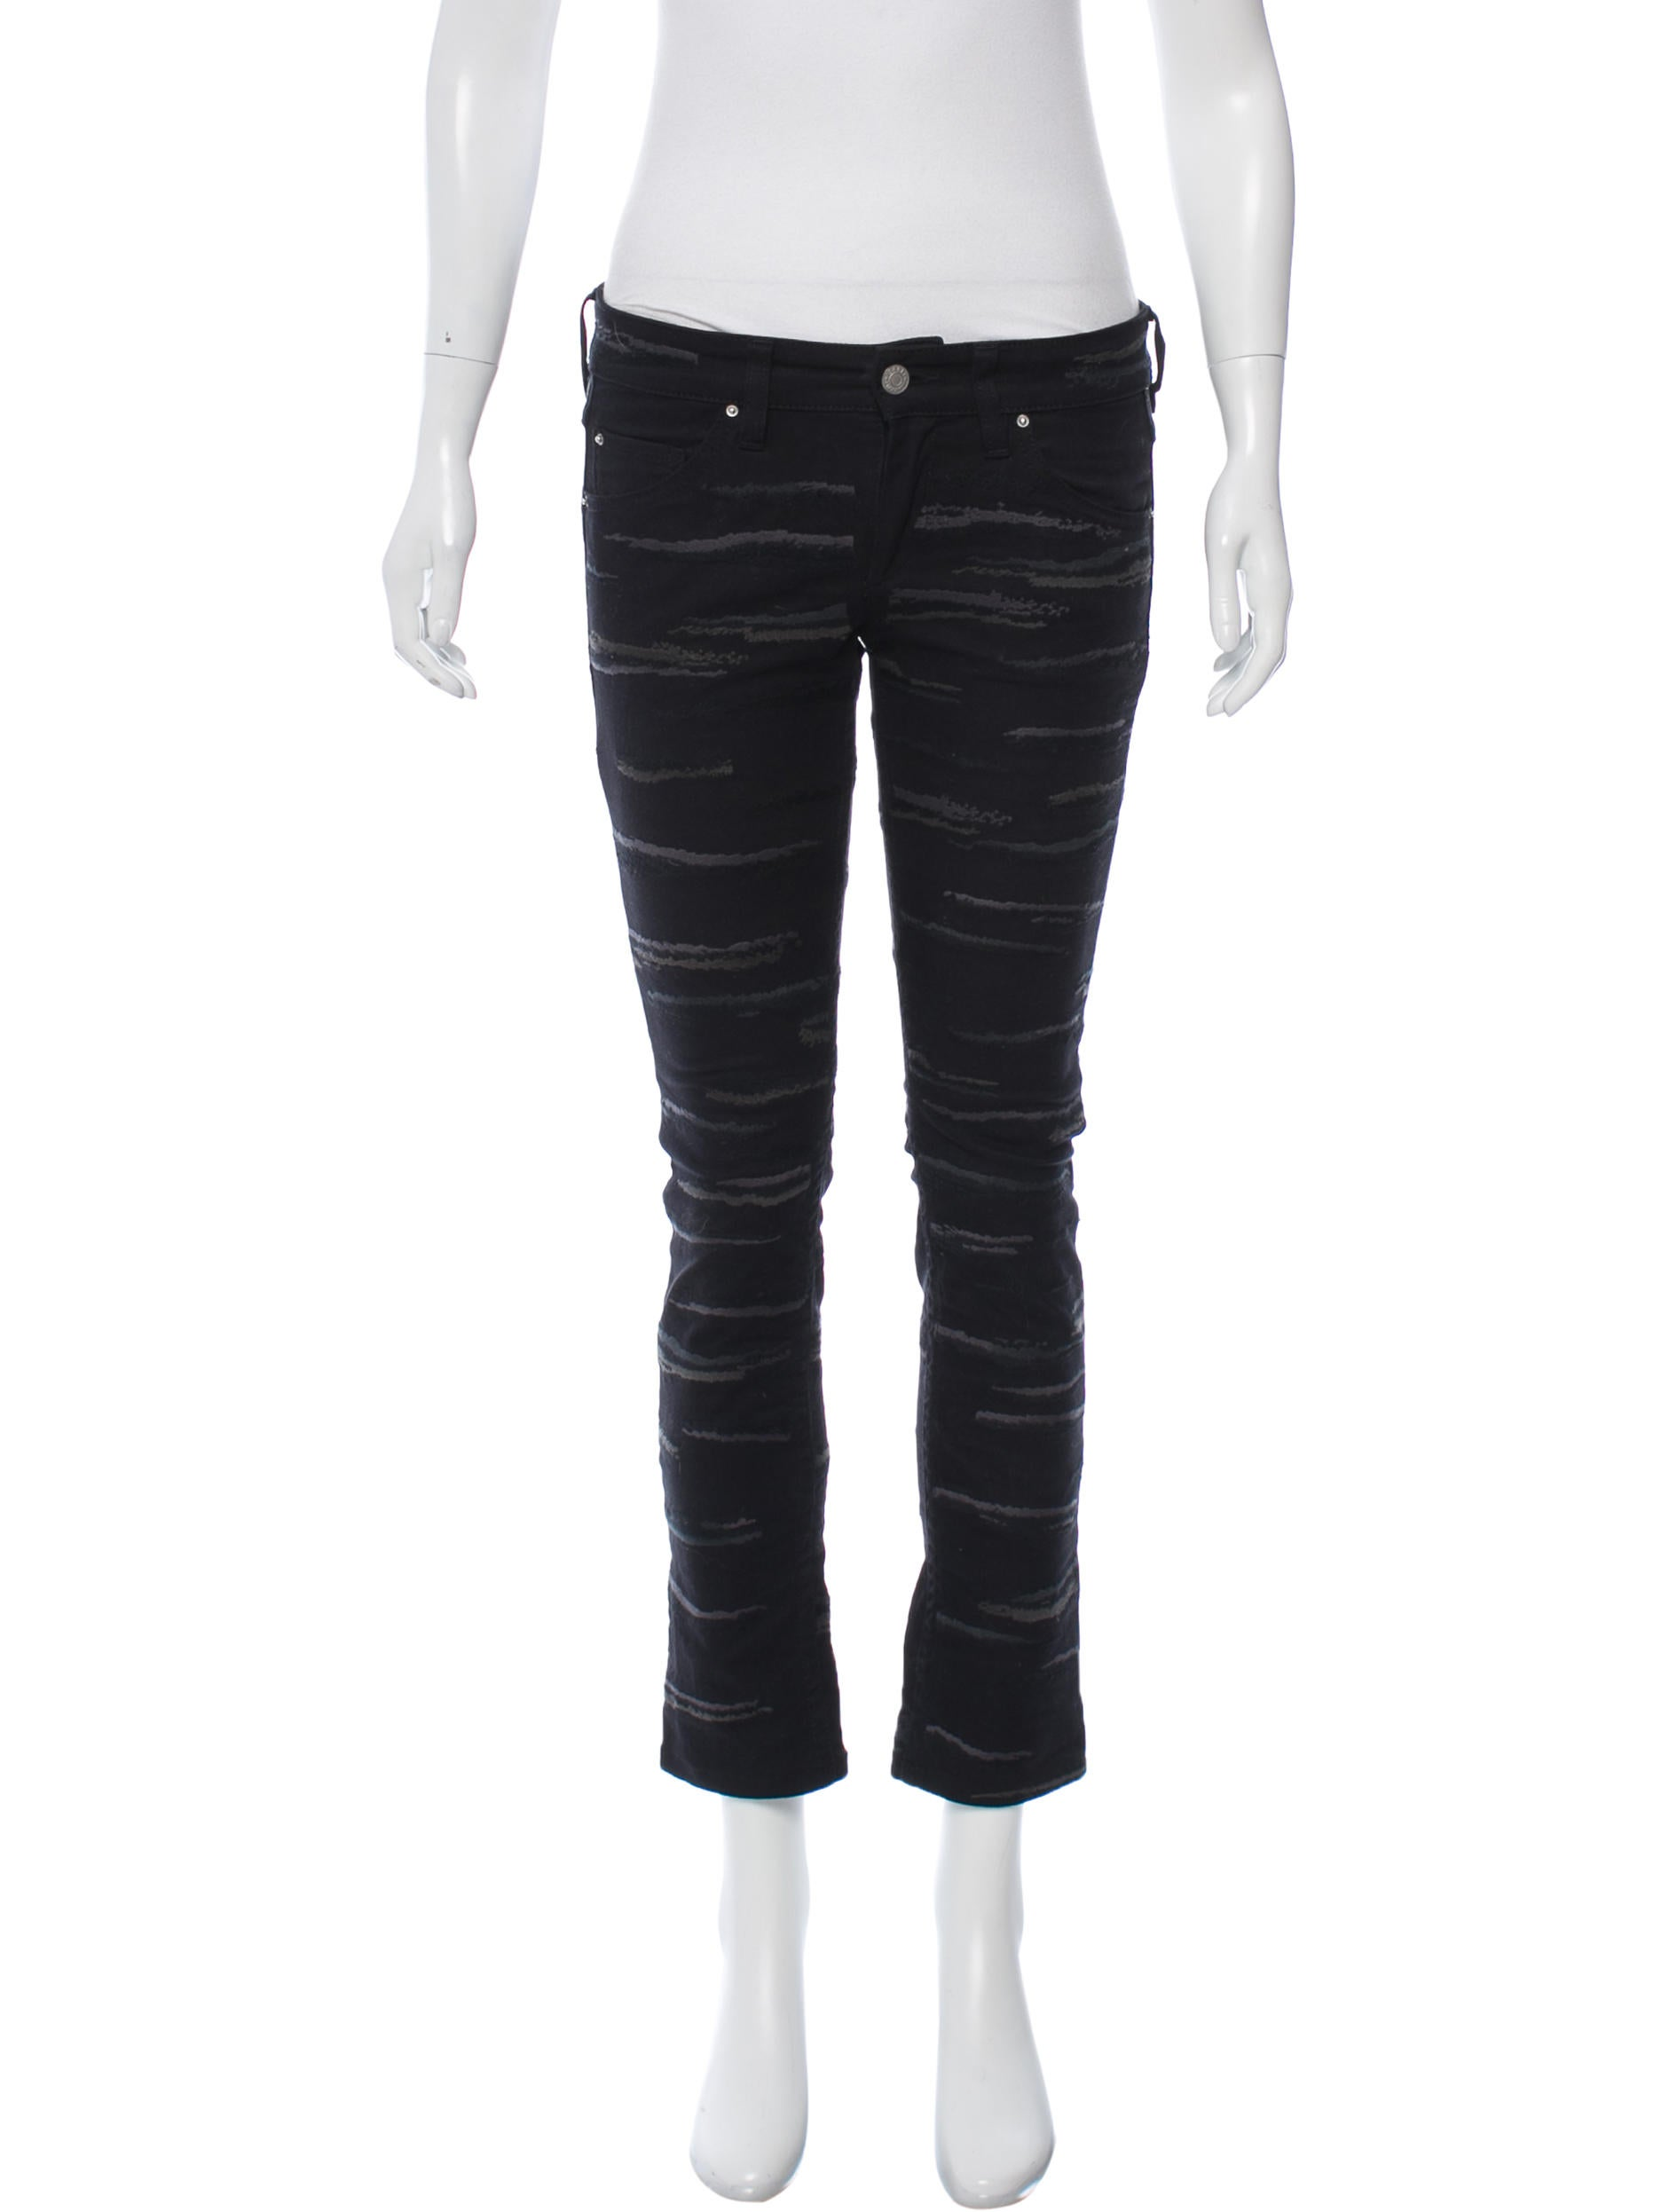 Isabel Marant Embroidered Straight-Leg Jeans - Clothing - ISA39577 | The RealReal